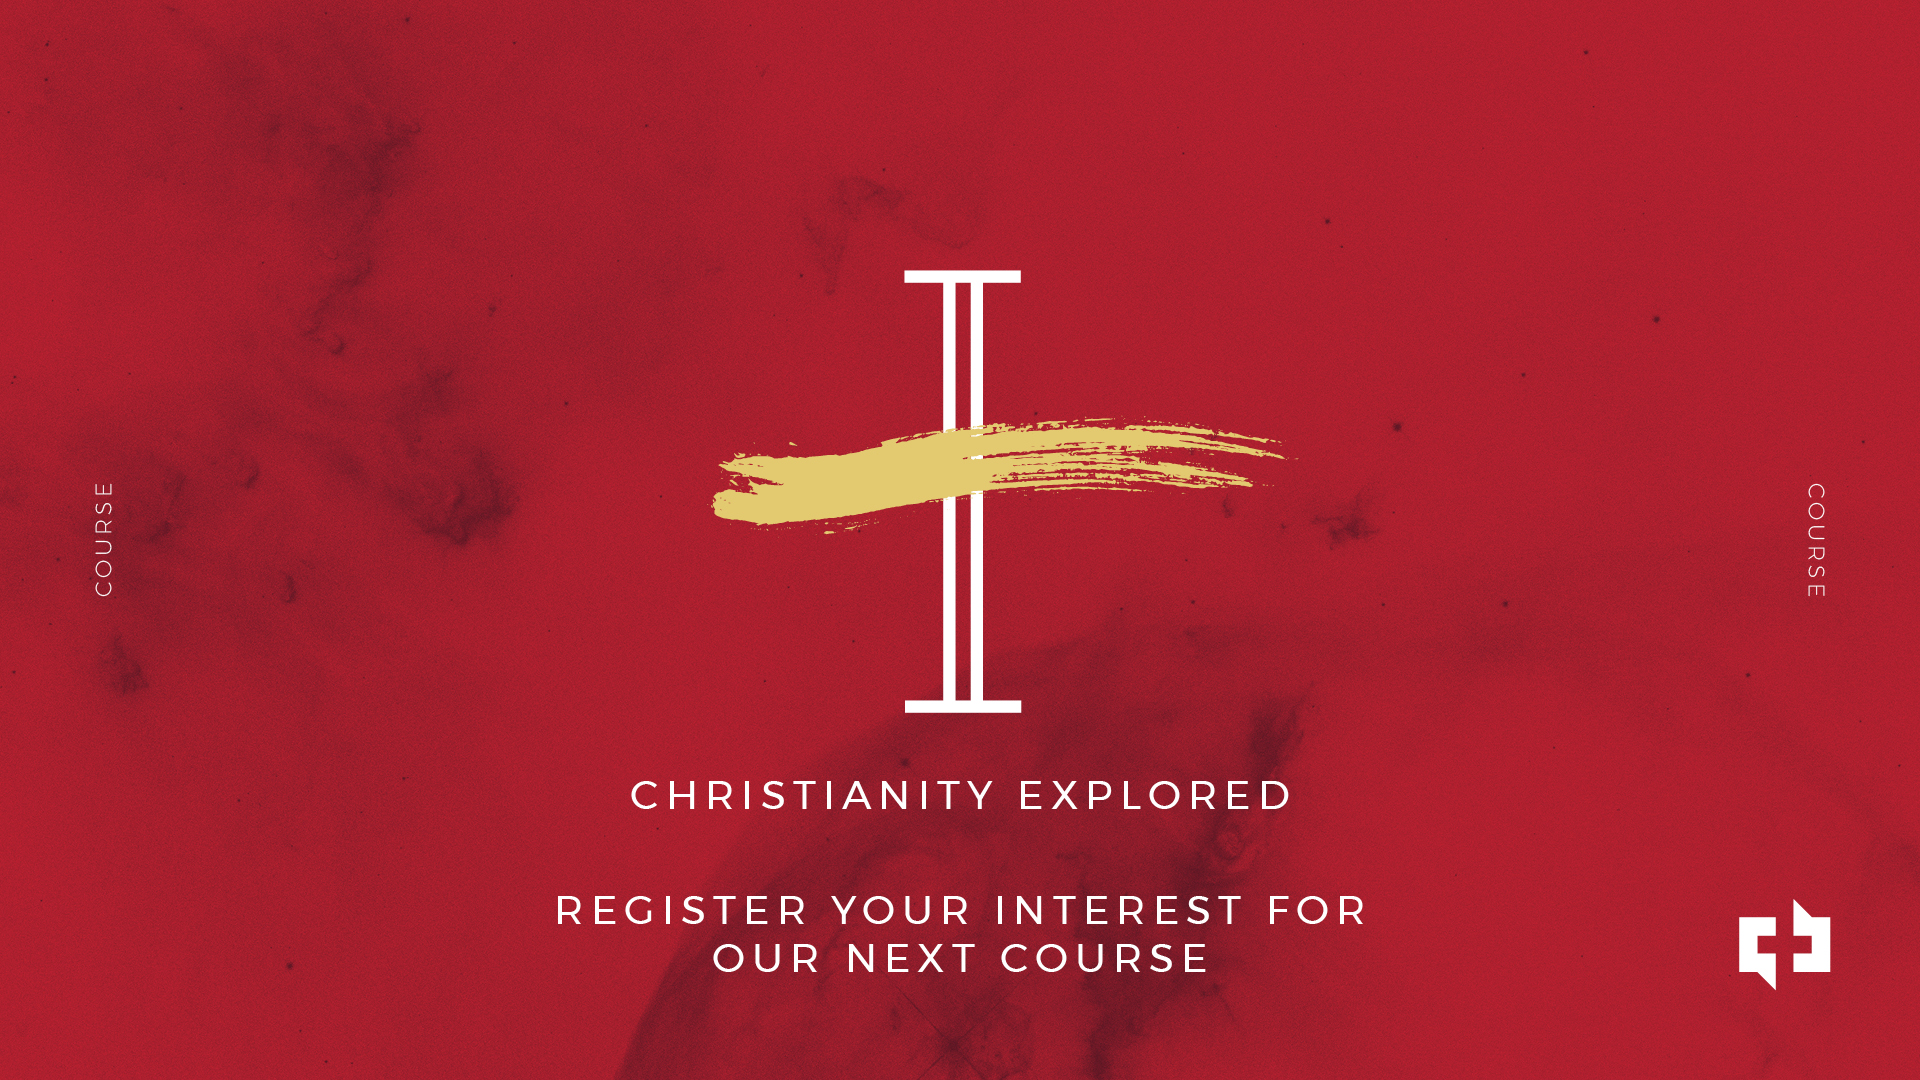 Christianity Explored-Register Interest